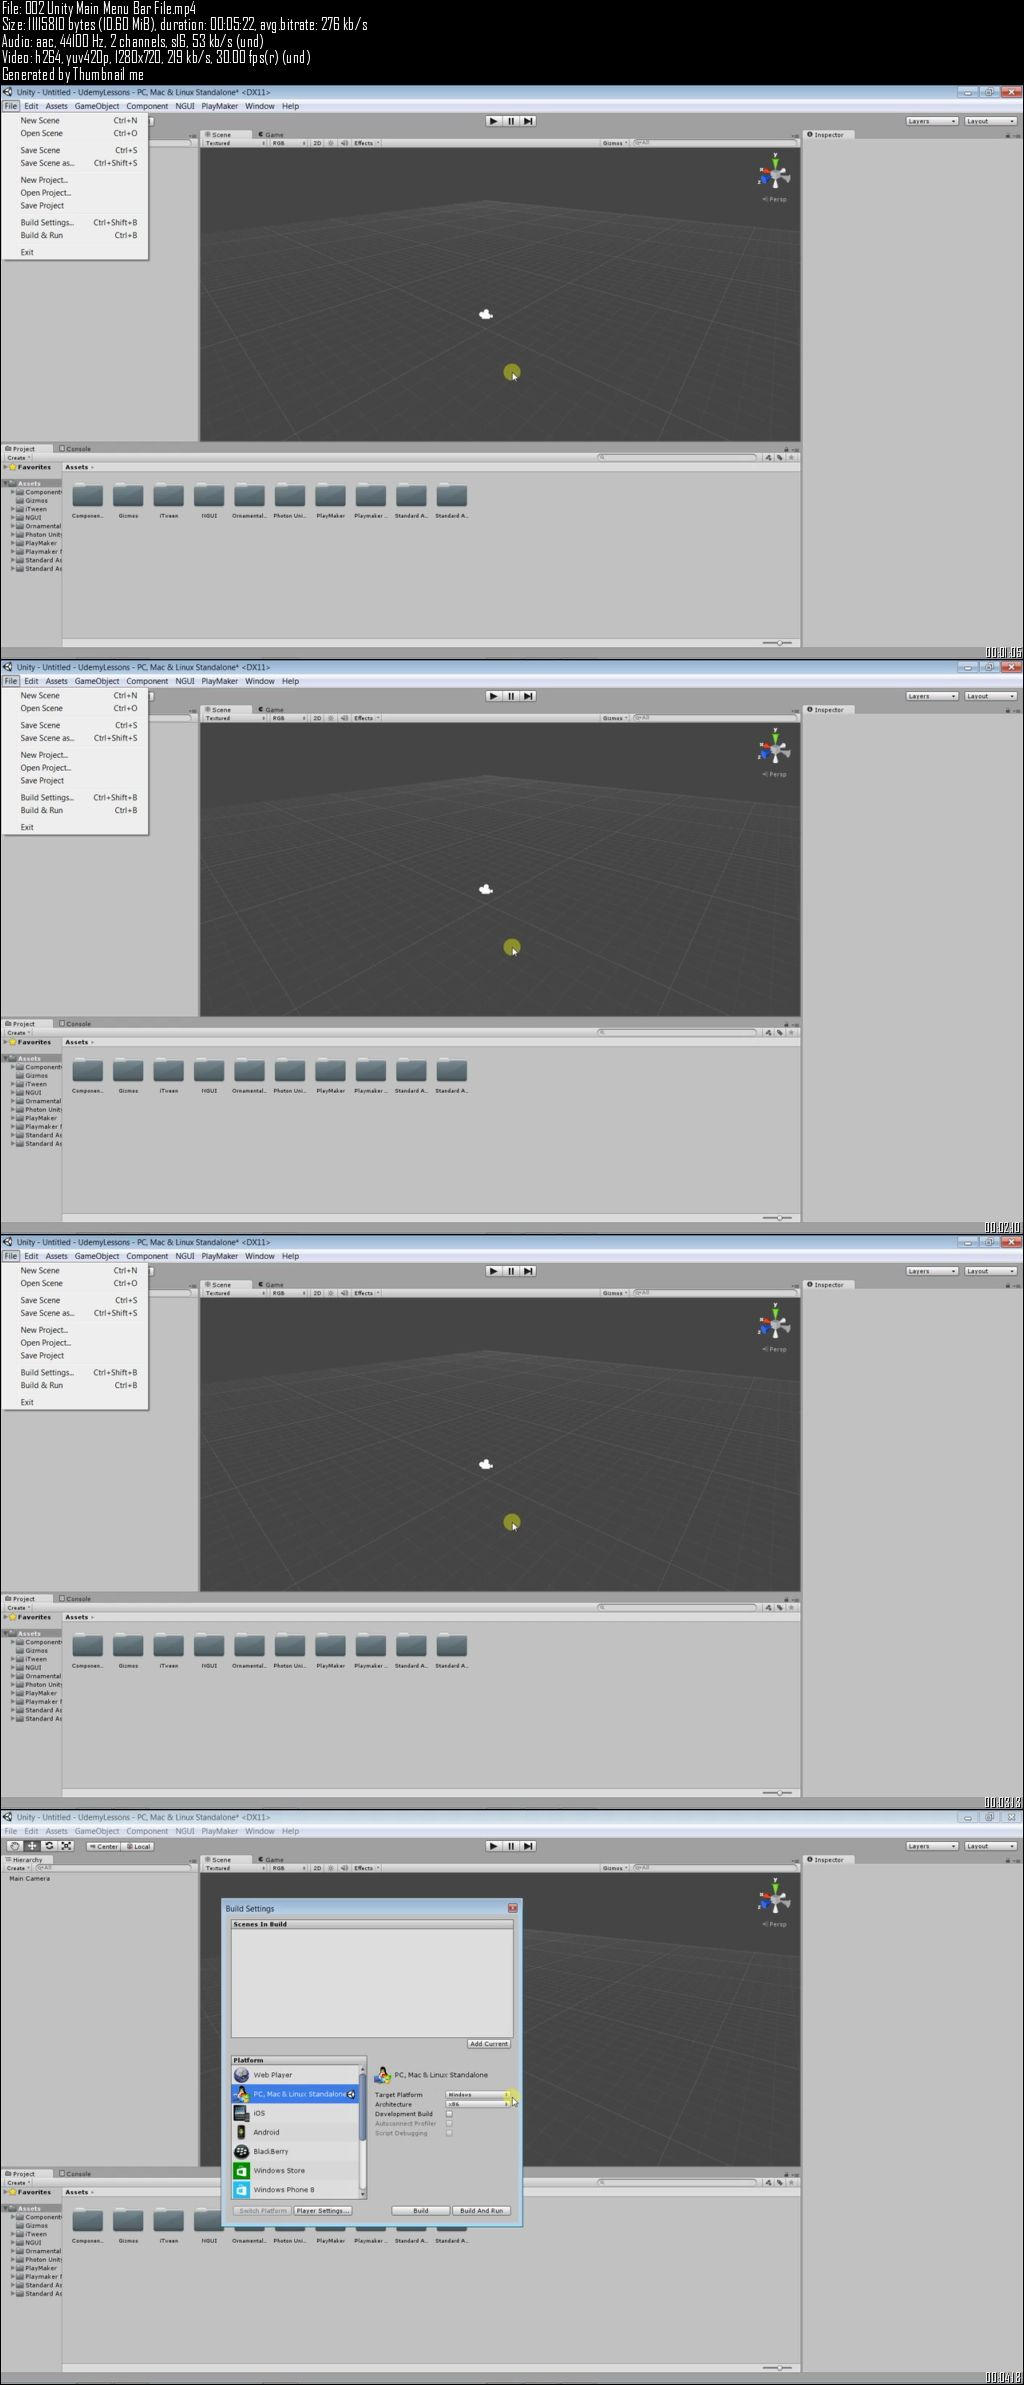 Learn to Make Games Without Code - Using Unity and Playmaker